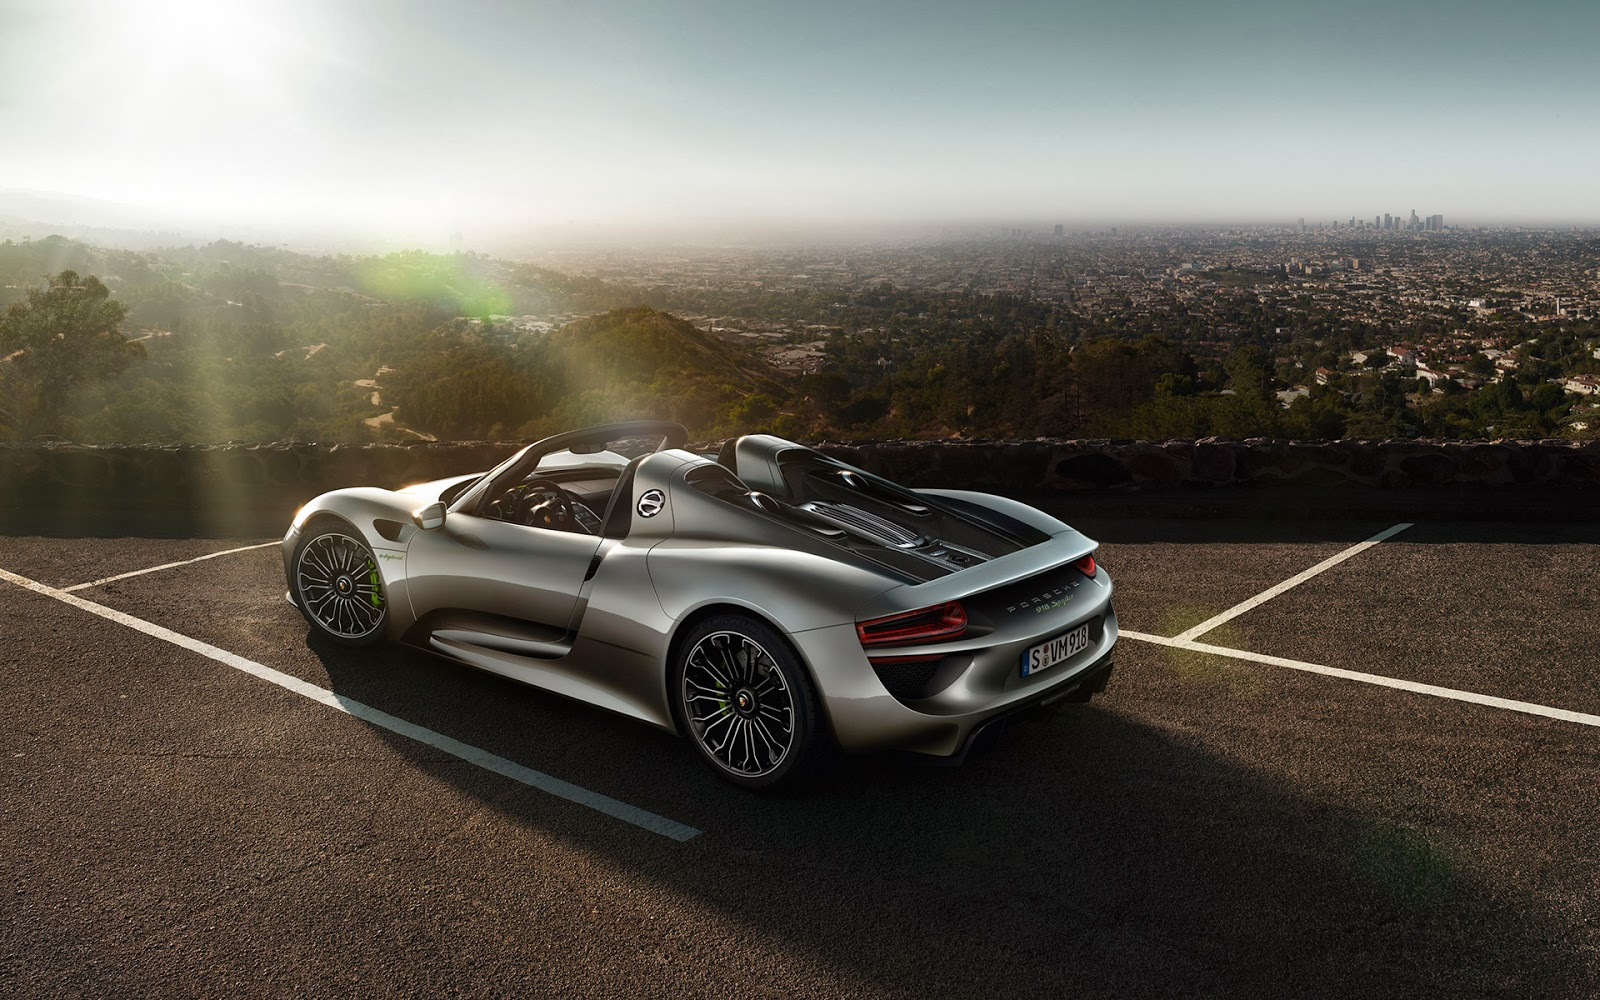 twitter headers facebook covers wallpapers calendars porsche 918 spyder at hill sunlight. Black Bedroom Furniture Sets. Home Design Ideas